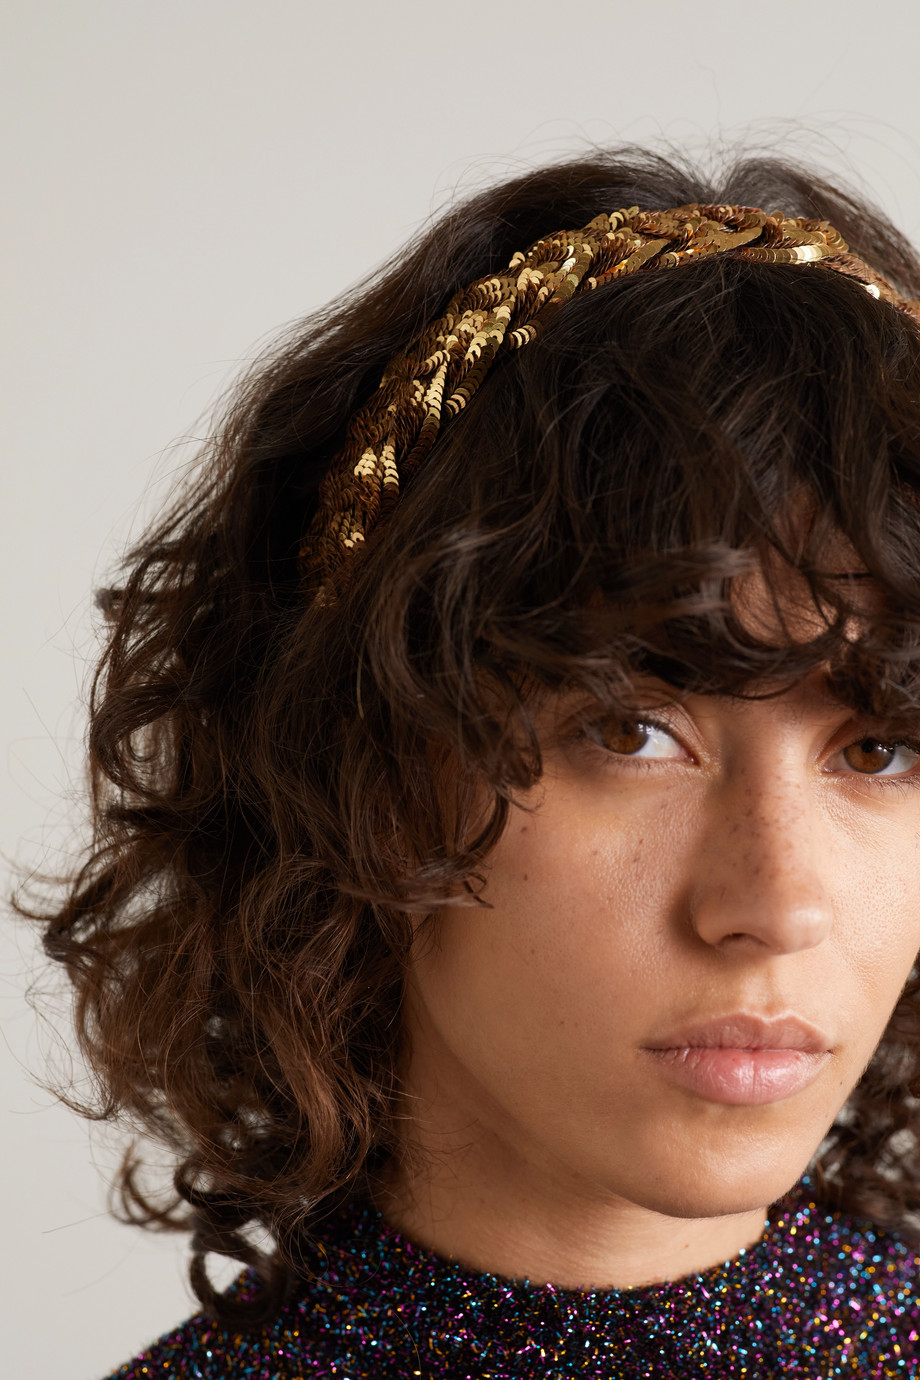 GUCCI Braided sequined tulle headband